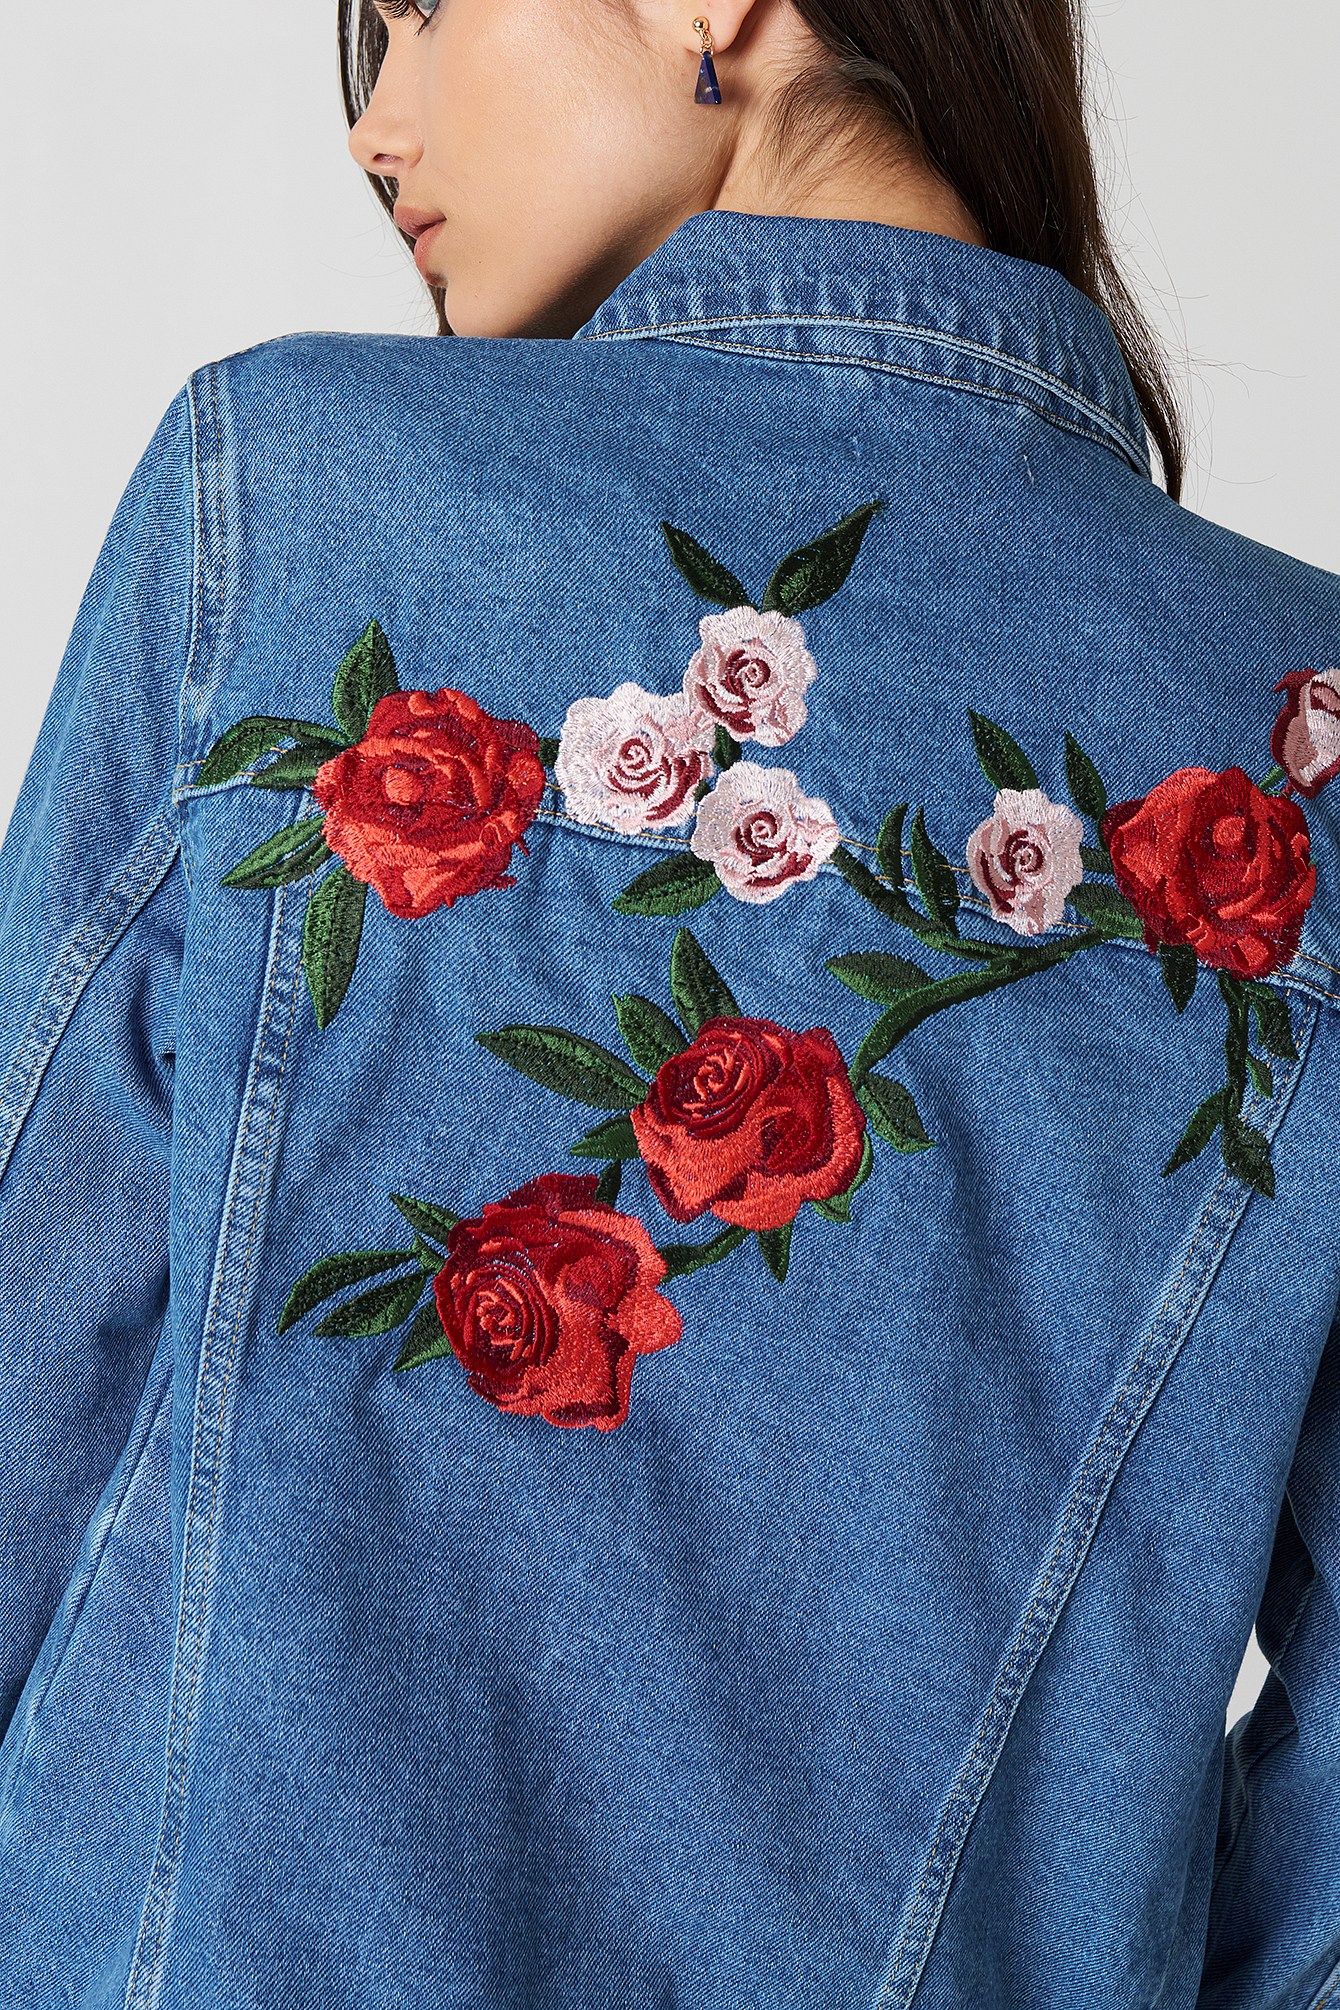 Flower Embroidery Denim Jacket Medium Wash Na Kd Com